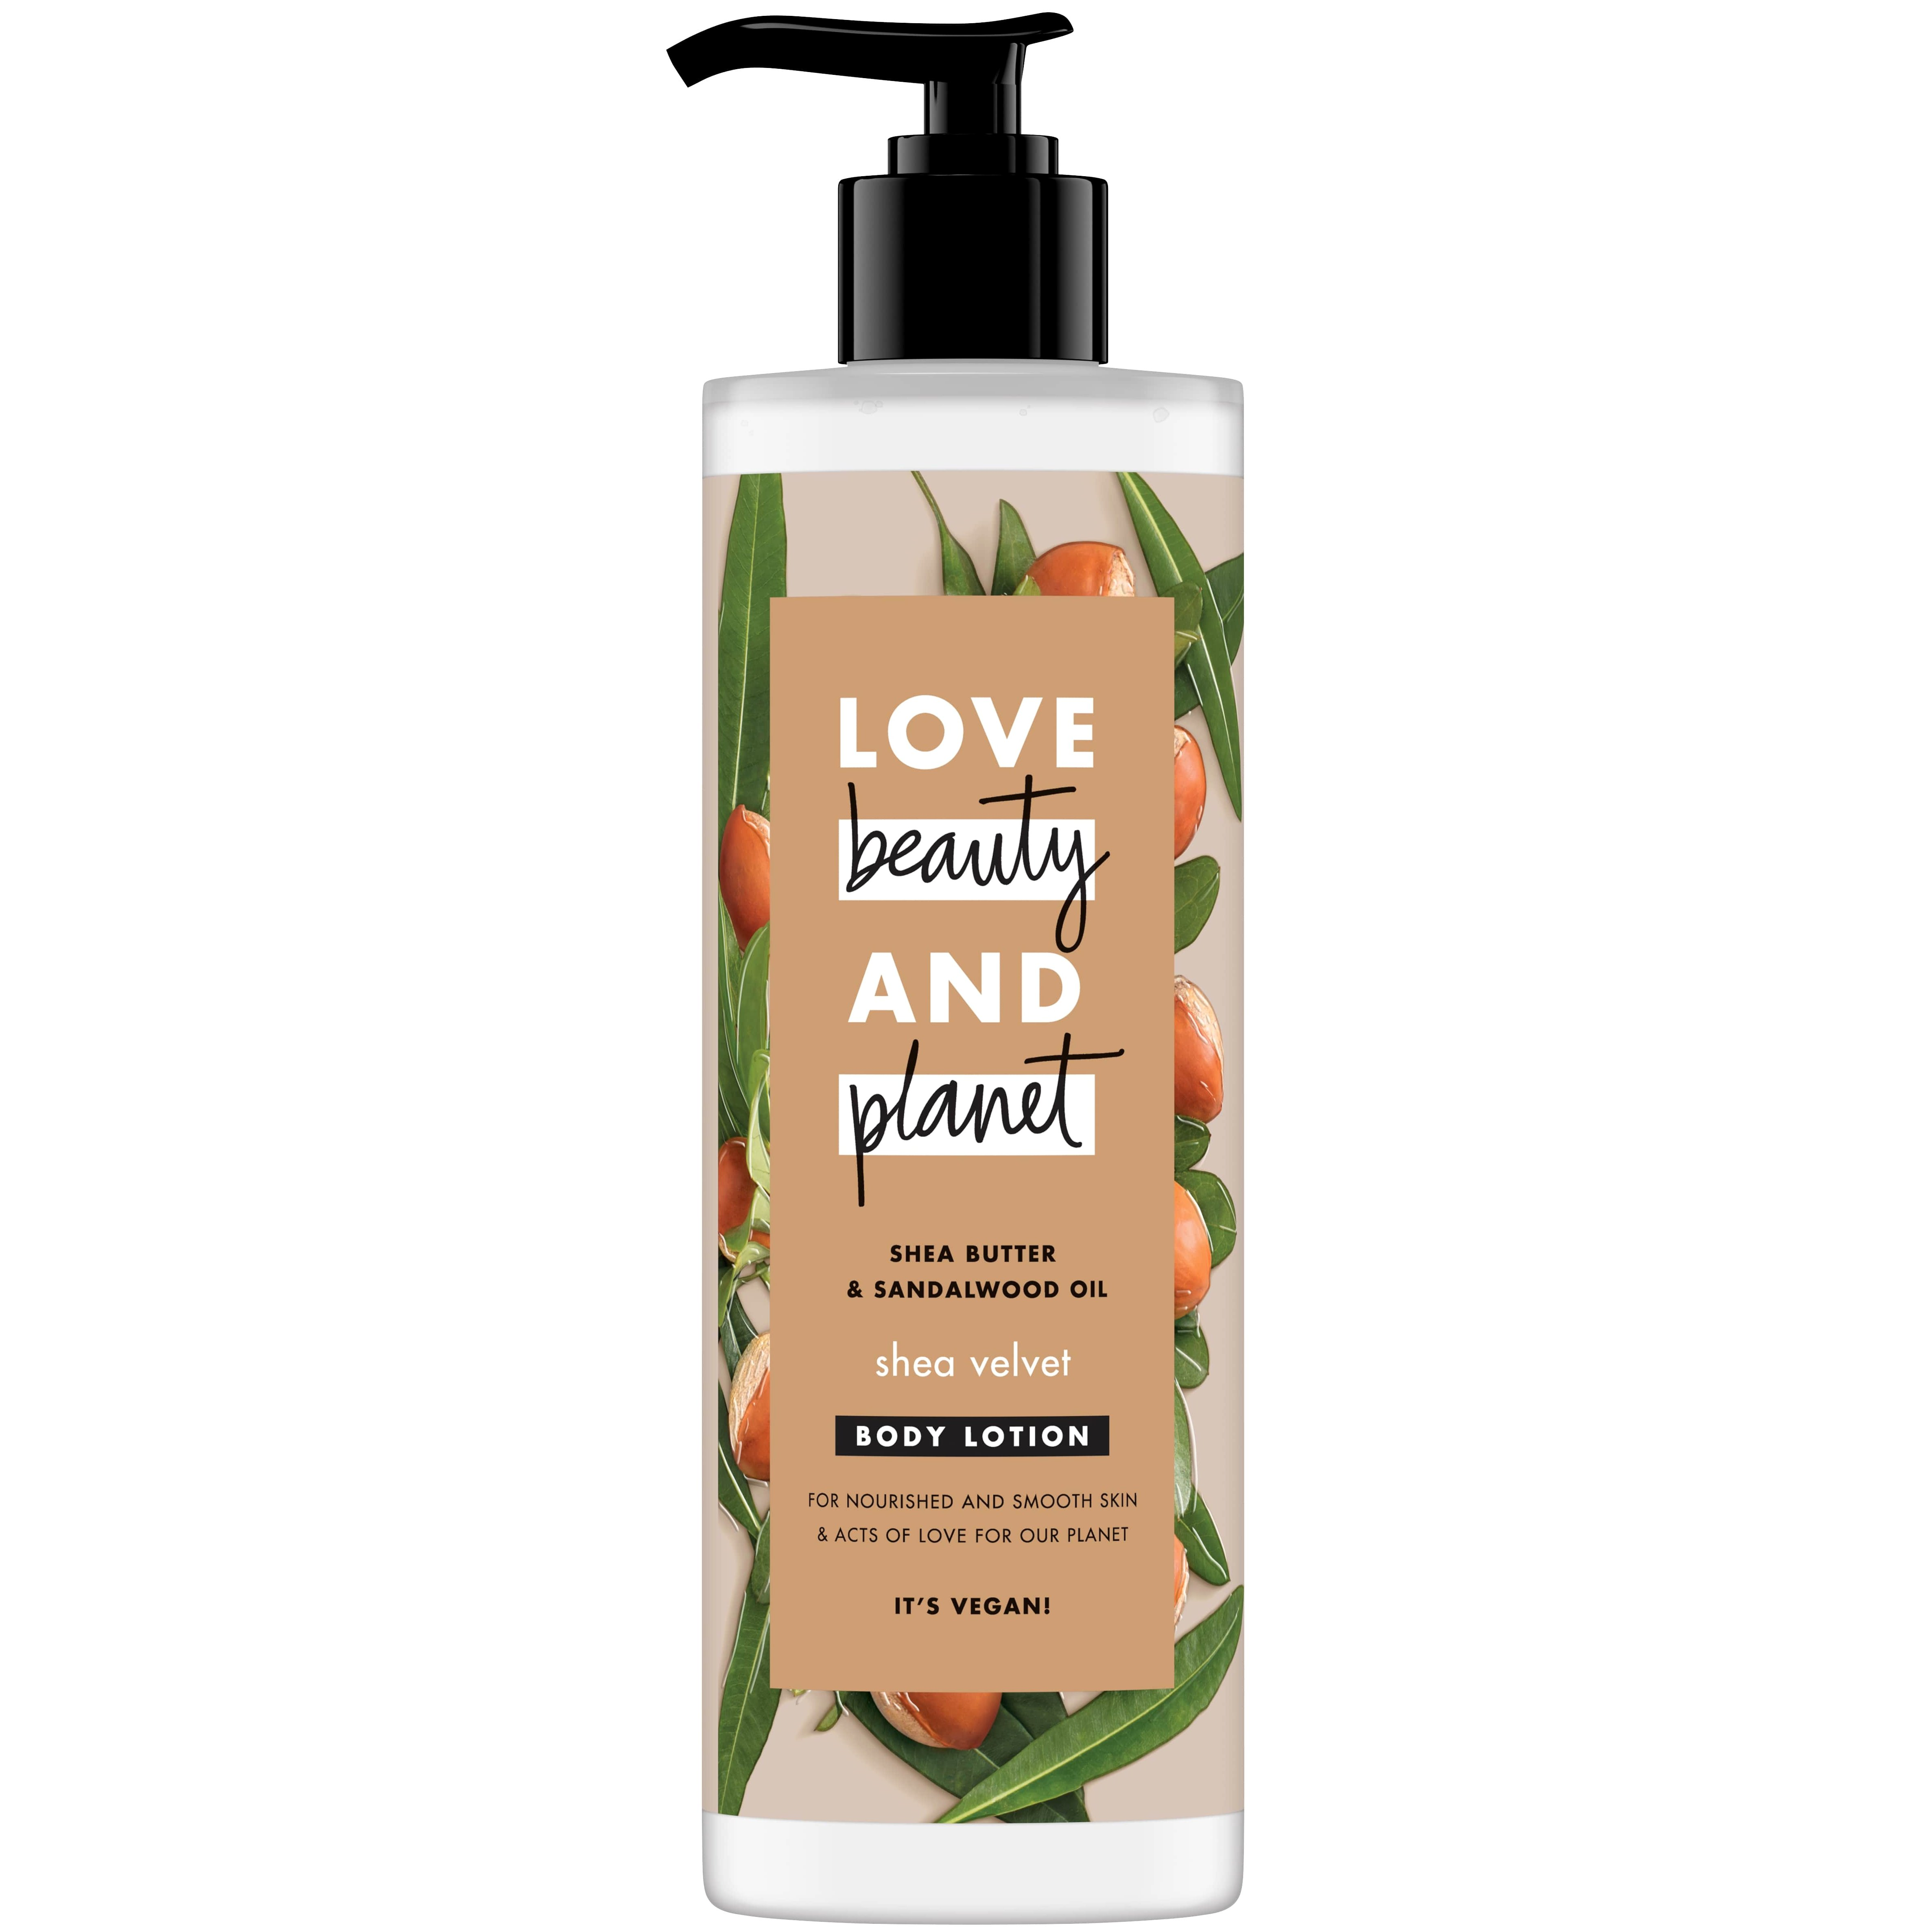 Love Beauty and Planet Shea Butter & Sandalwood Oil Body Lotion, Λοσιόν Σώματος 400ml